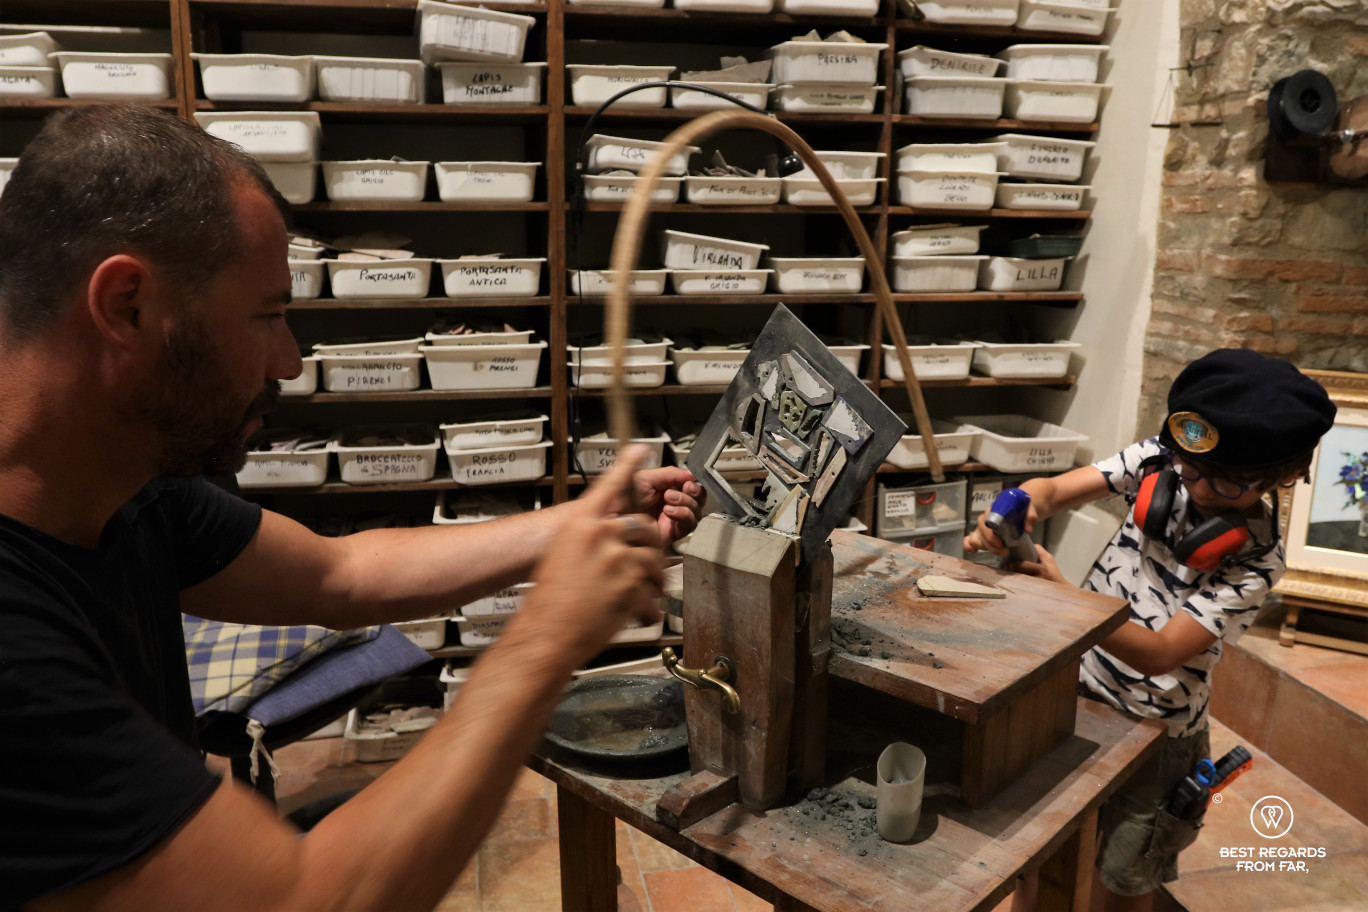 The crafts of Florence: comesso fiorentino: precious stones cut by a craftsman and his son.